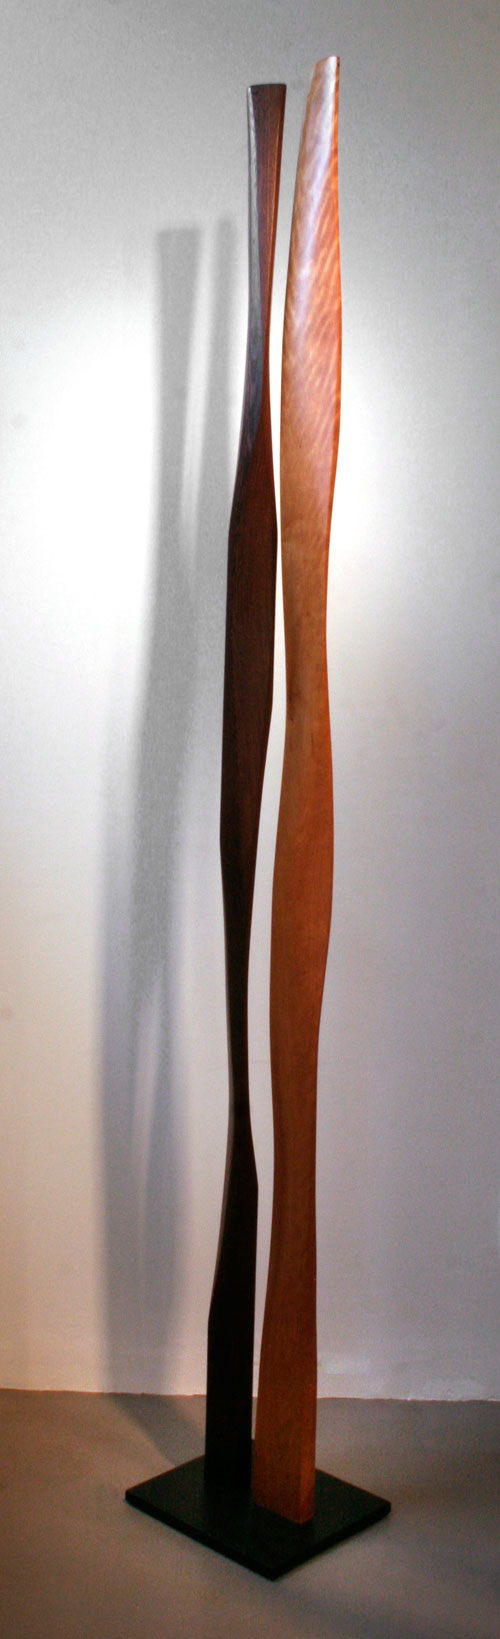 "Gracious Duo  , 2008  paperstone, cherry, wenge  97"" x 14"" x 12"""